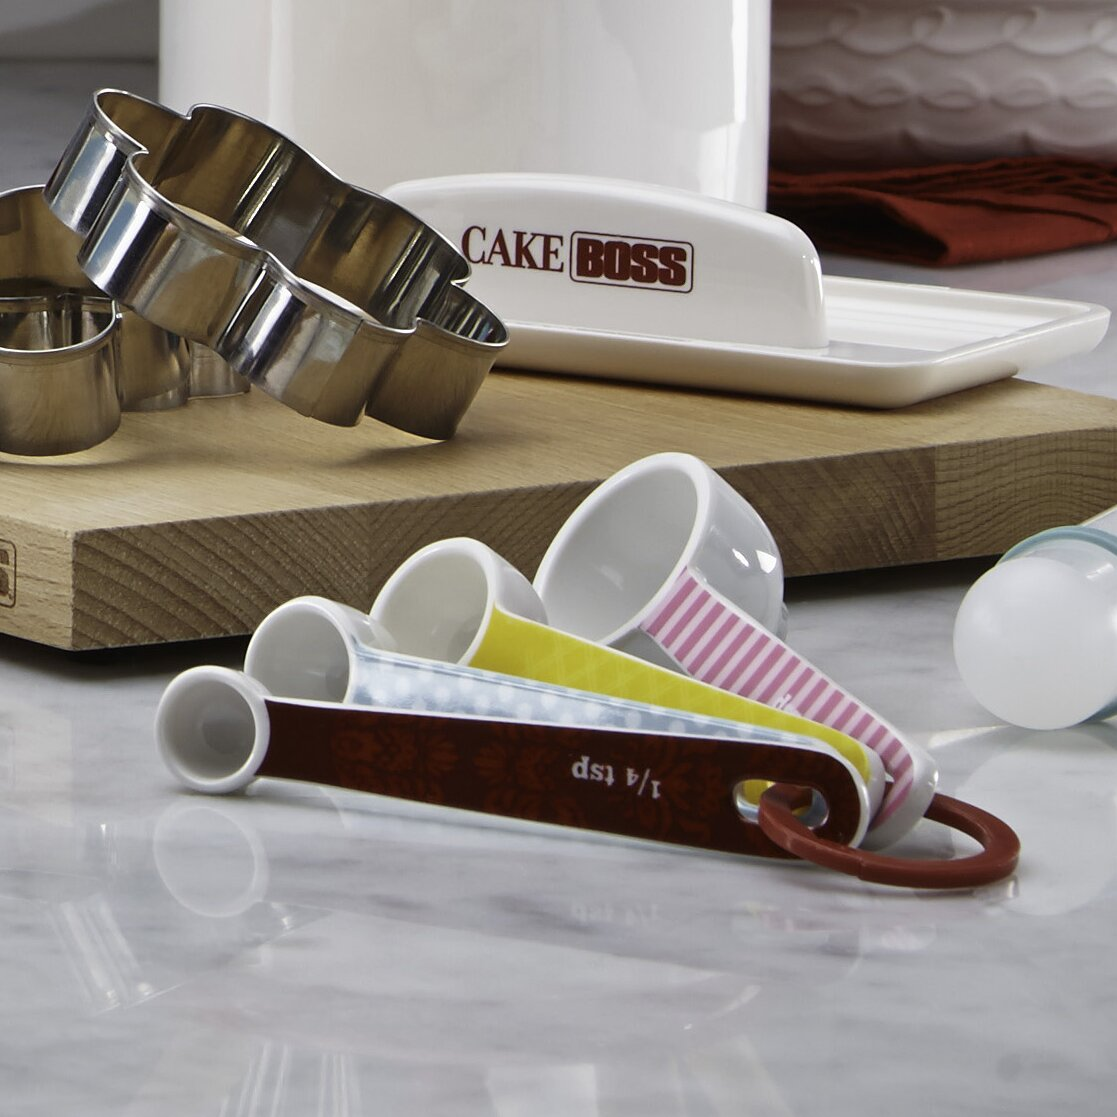 Countertop Measuring Tool Cake Boss 4 Piece Countertop Accessories Melamine